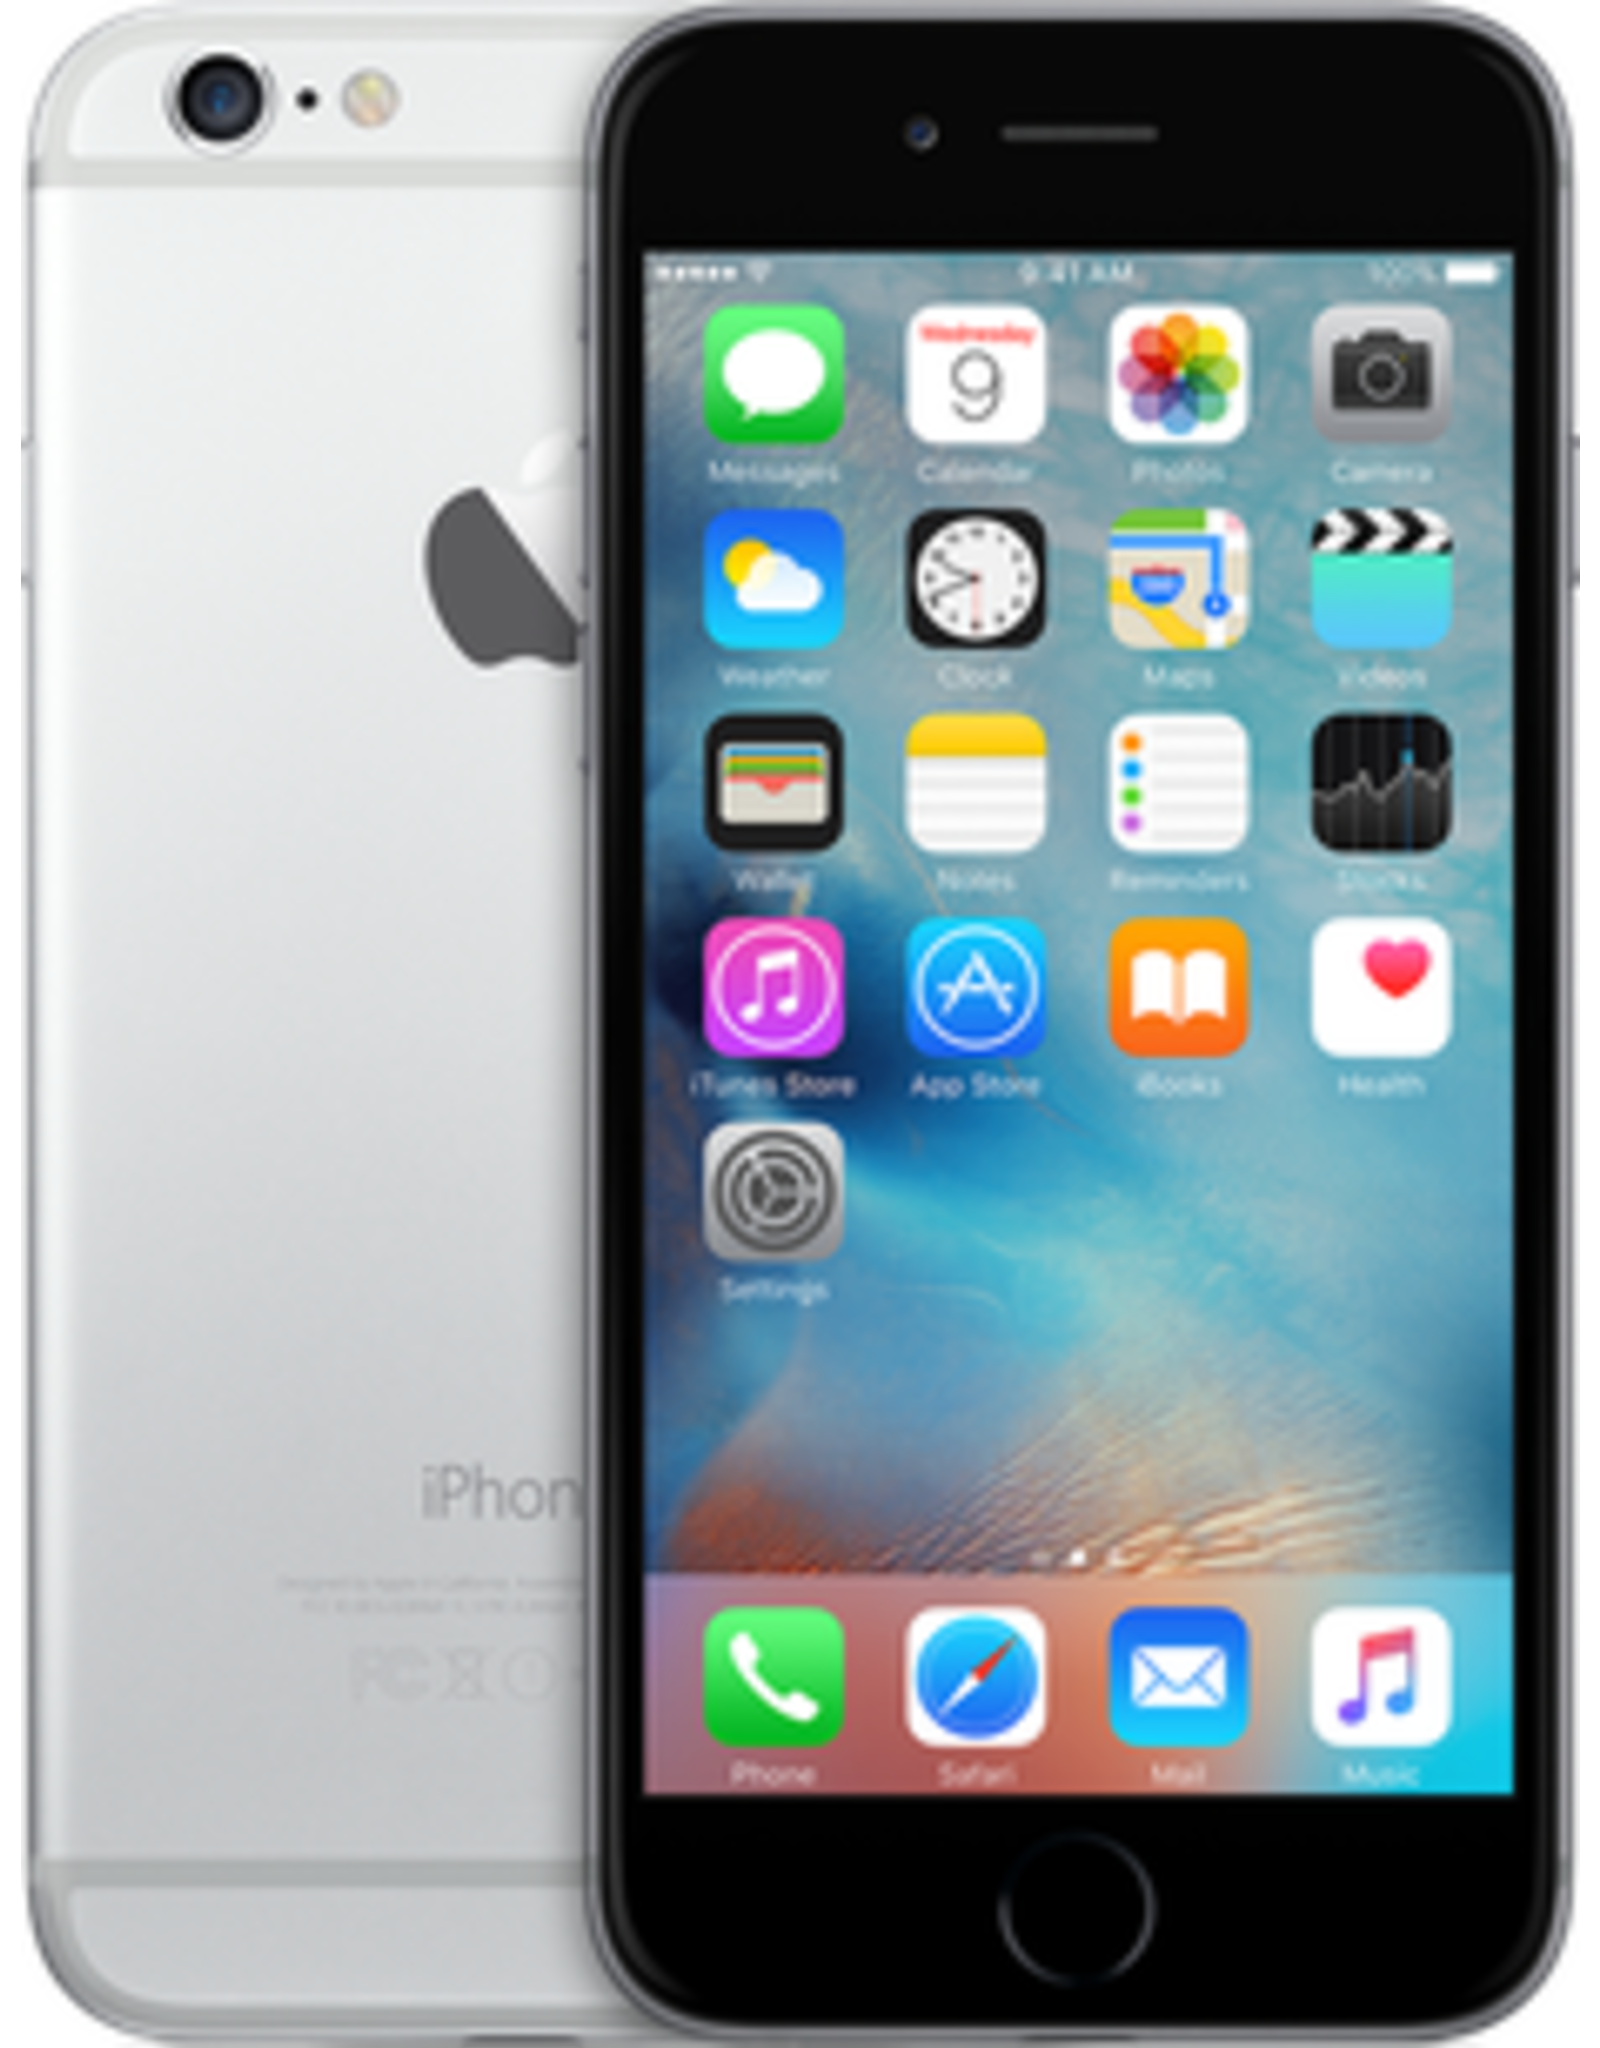 Apple iPhone 6 Plus (16GB, Space Gray) - 30 Day Exchange